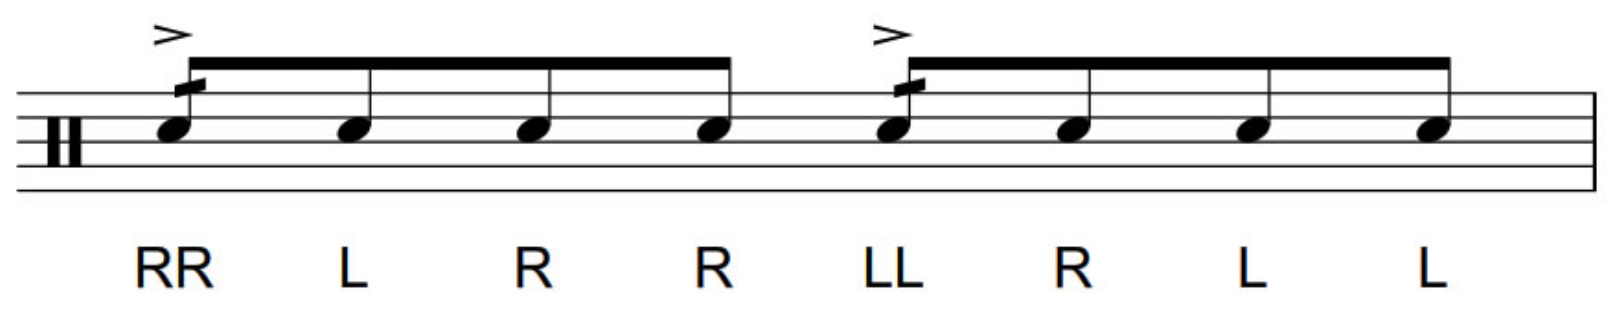 How do you play the single dragadiddle?